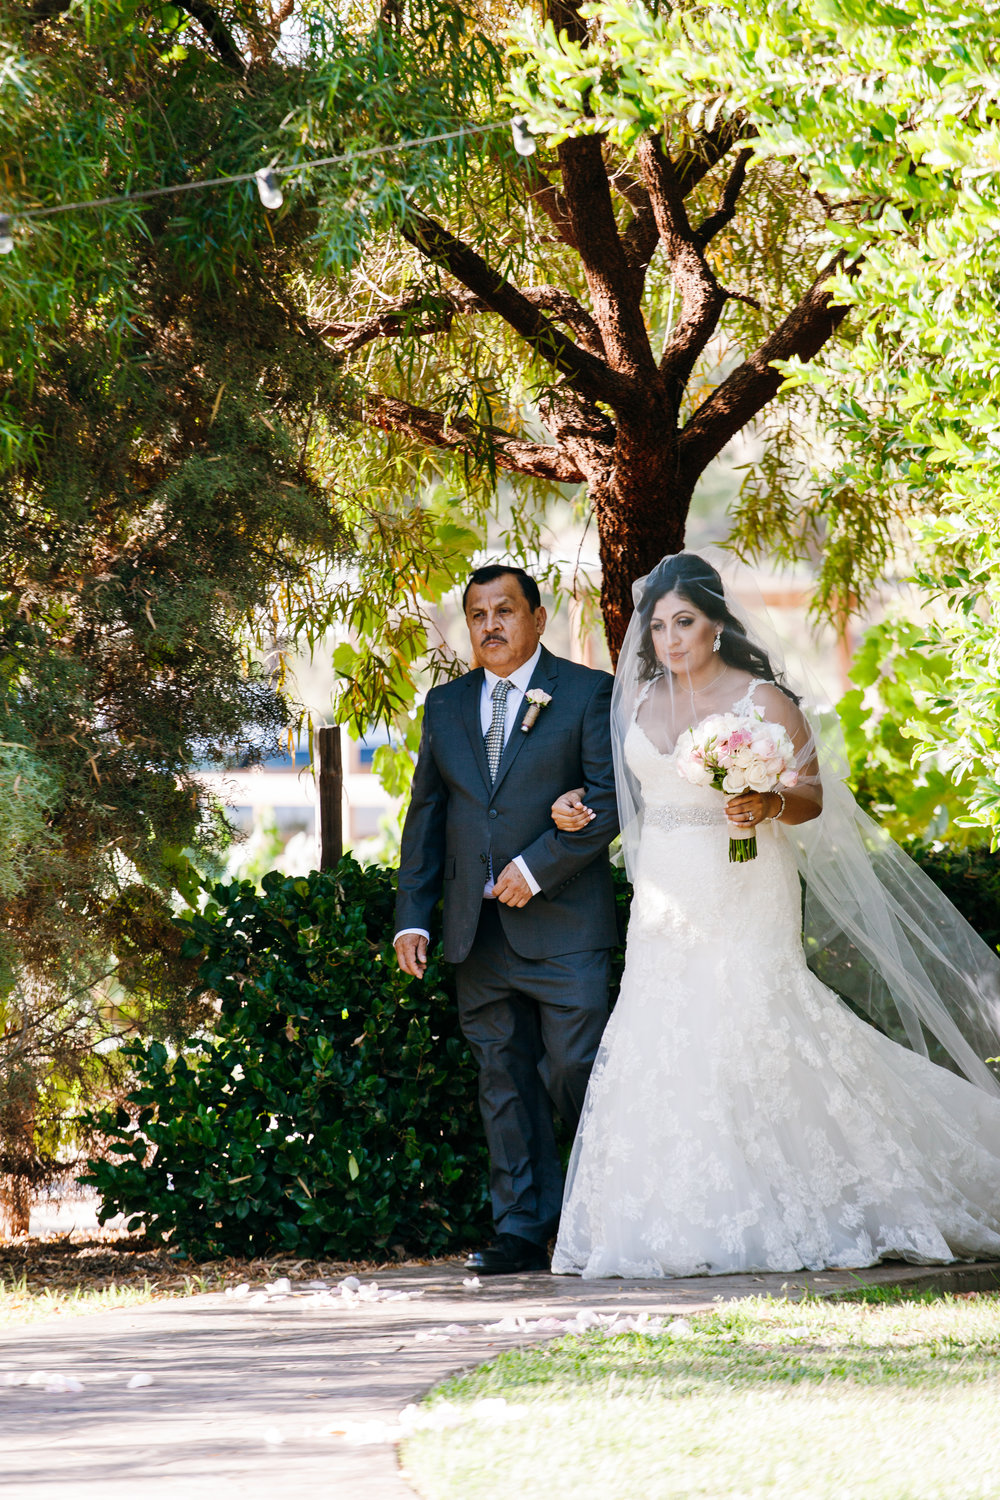 KaraNixonWeddings-Temecula-VineyardWedding-27.jpg